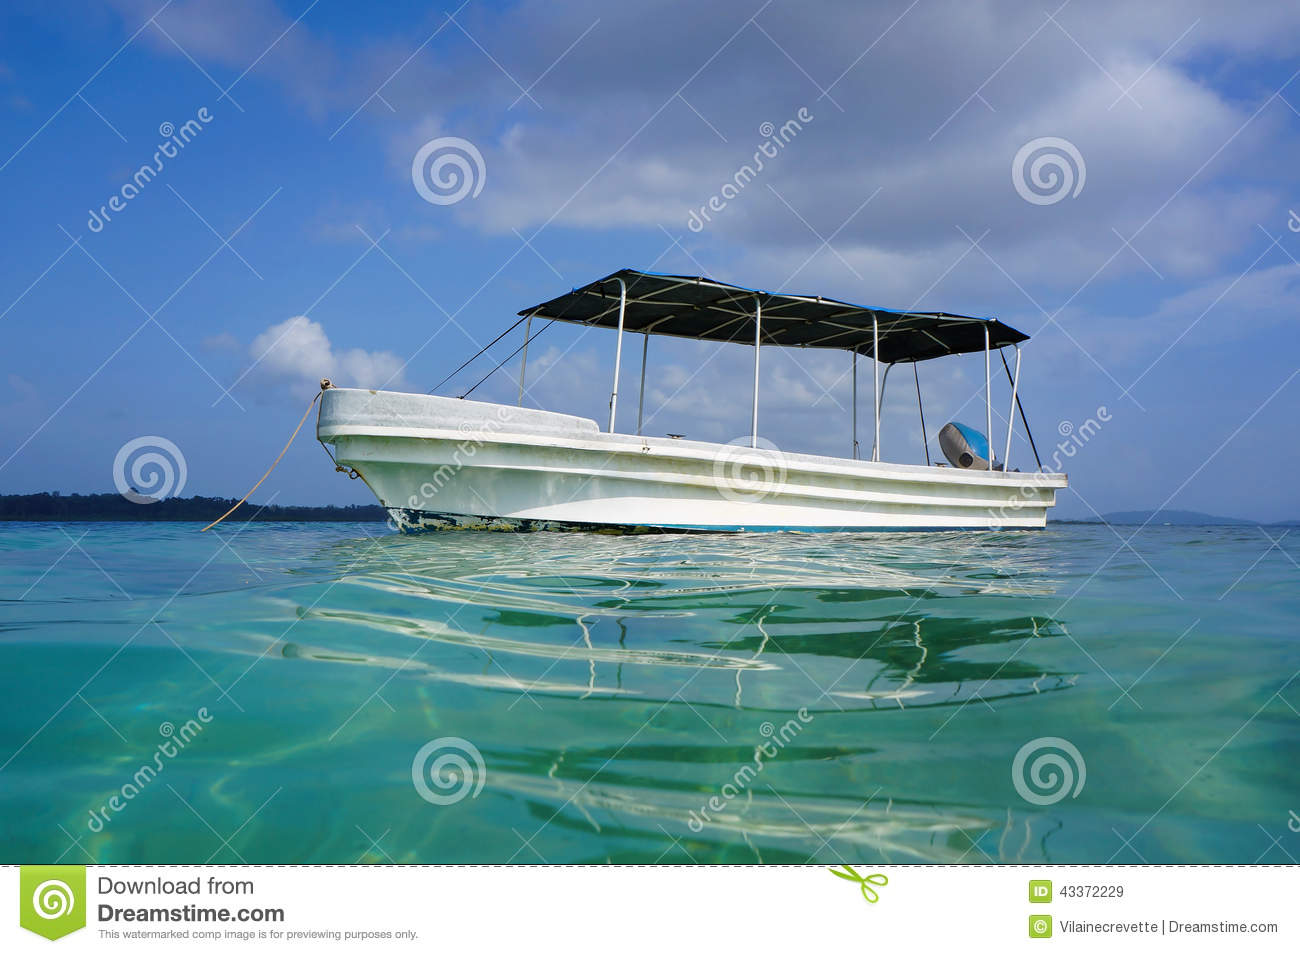 Pin Panga Boat Plans Image Search Results on Pinterest